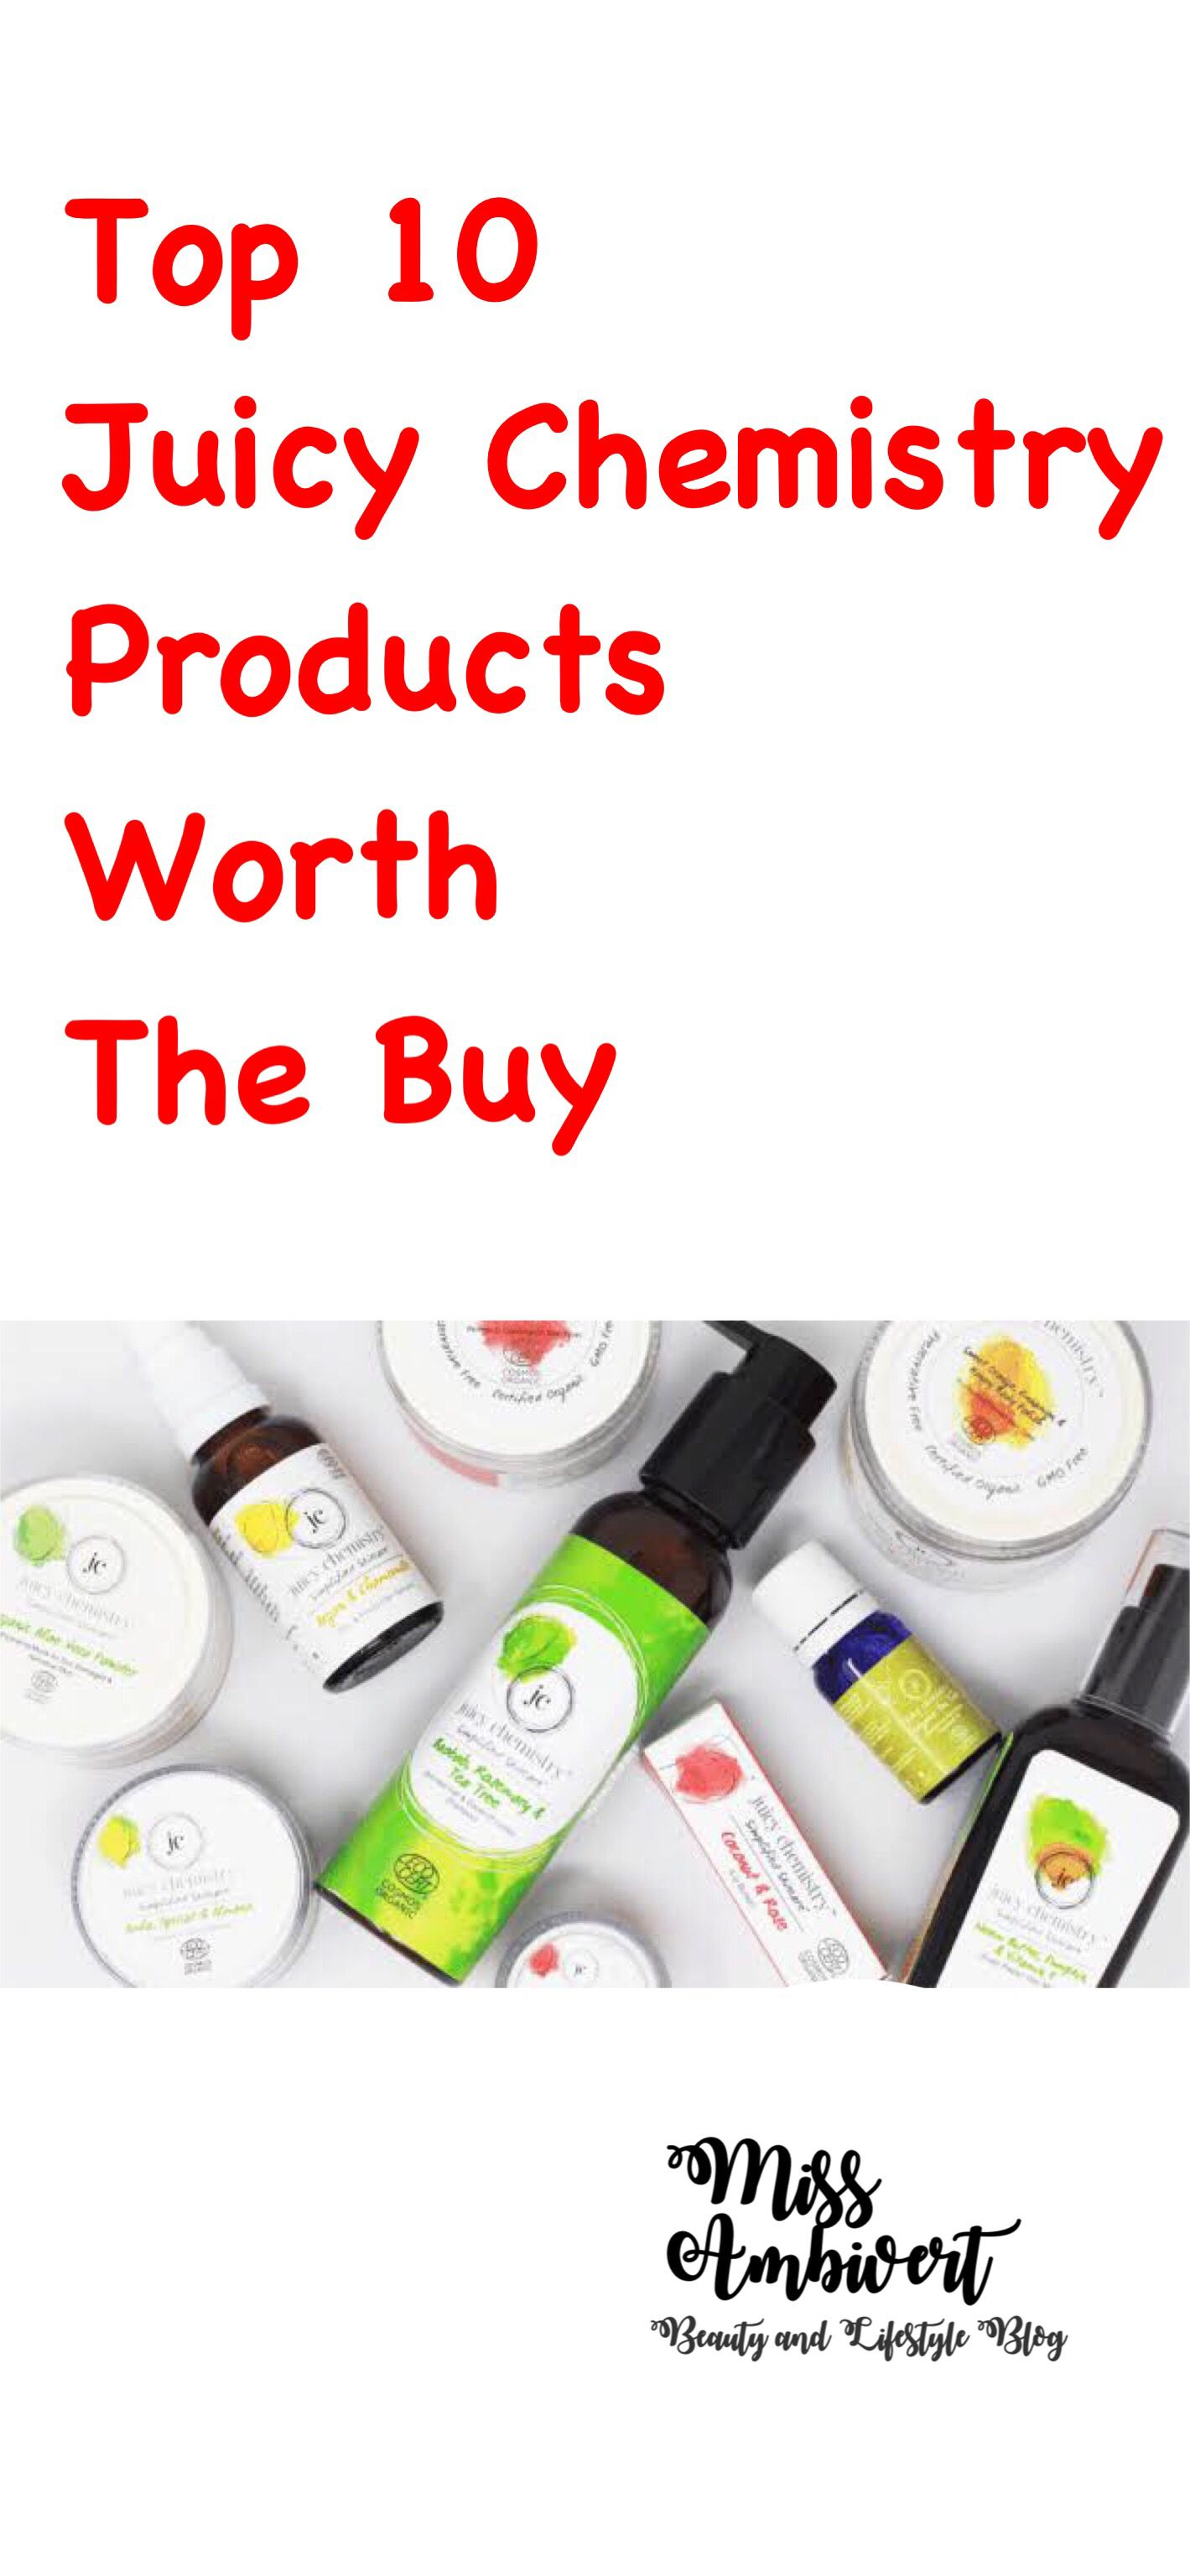 Top 10 Juicy Chemistry Products Worth The Buy! Miss